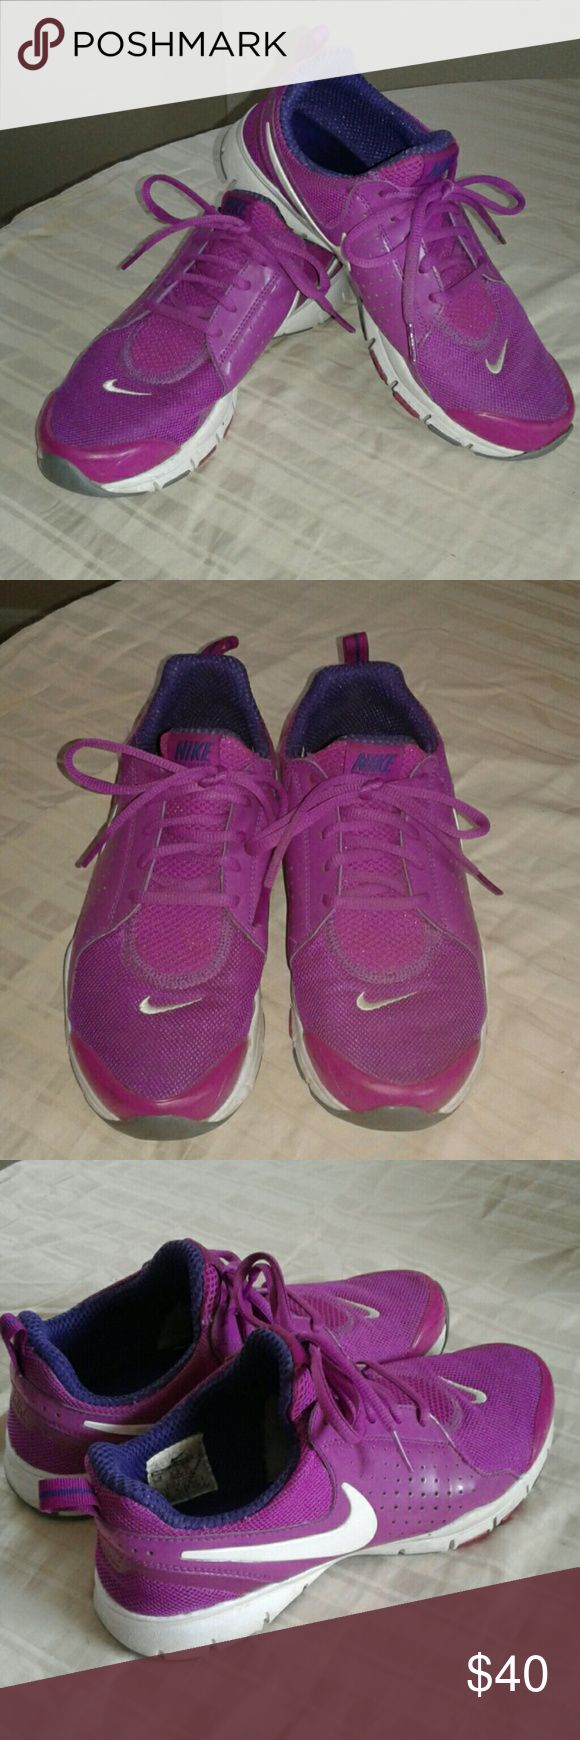 Womens Nike running shoes Purple with white running shoes and dark purple inner linning. Which also comes with a memory foam sock liner. Itgreat conditions. Nike Shoes Sneakers